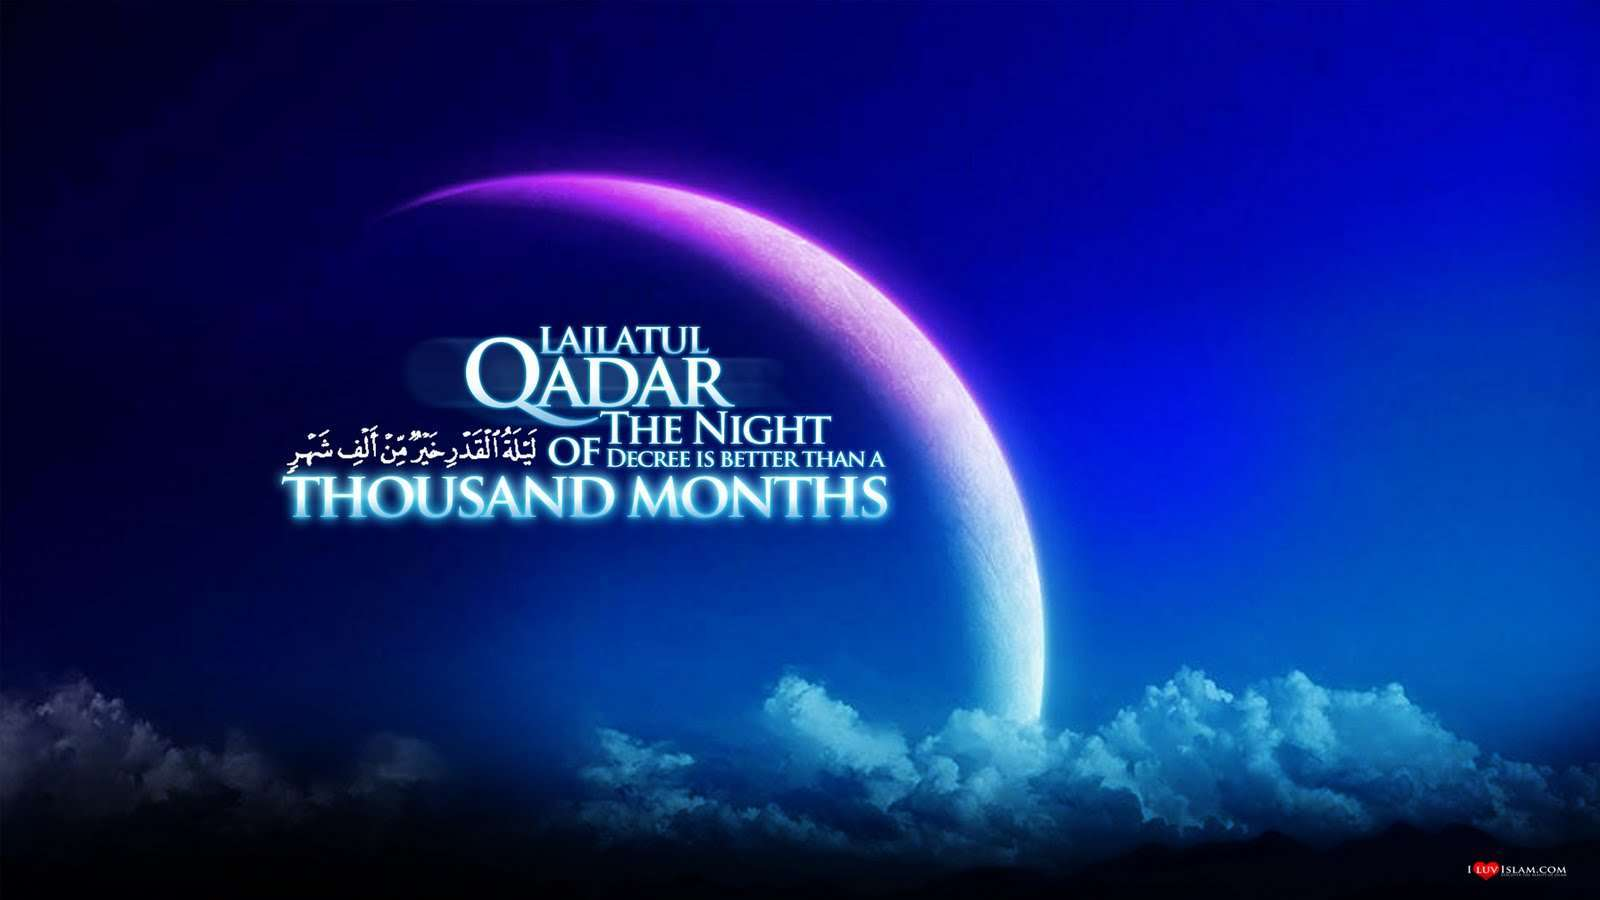 Lailatul-Qadr-HD-Wallpapers-webstudy.pk